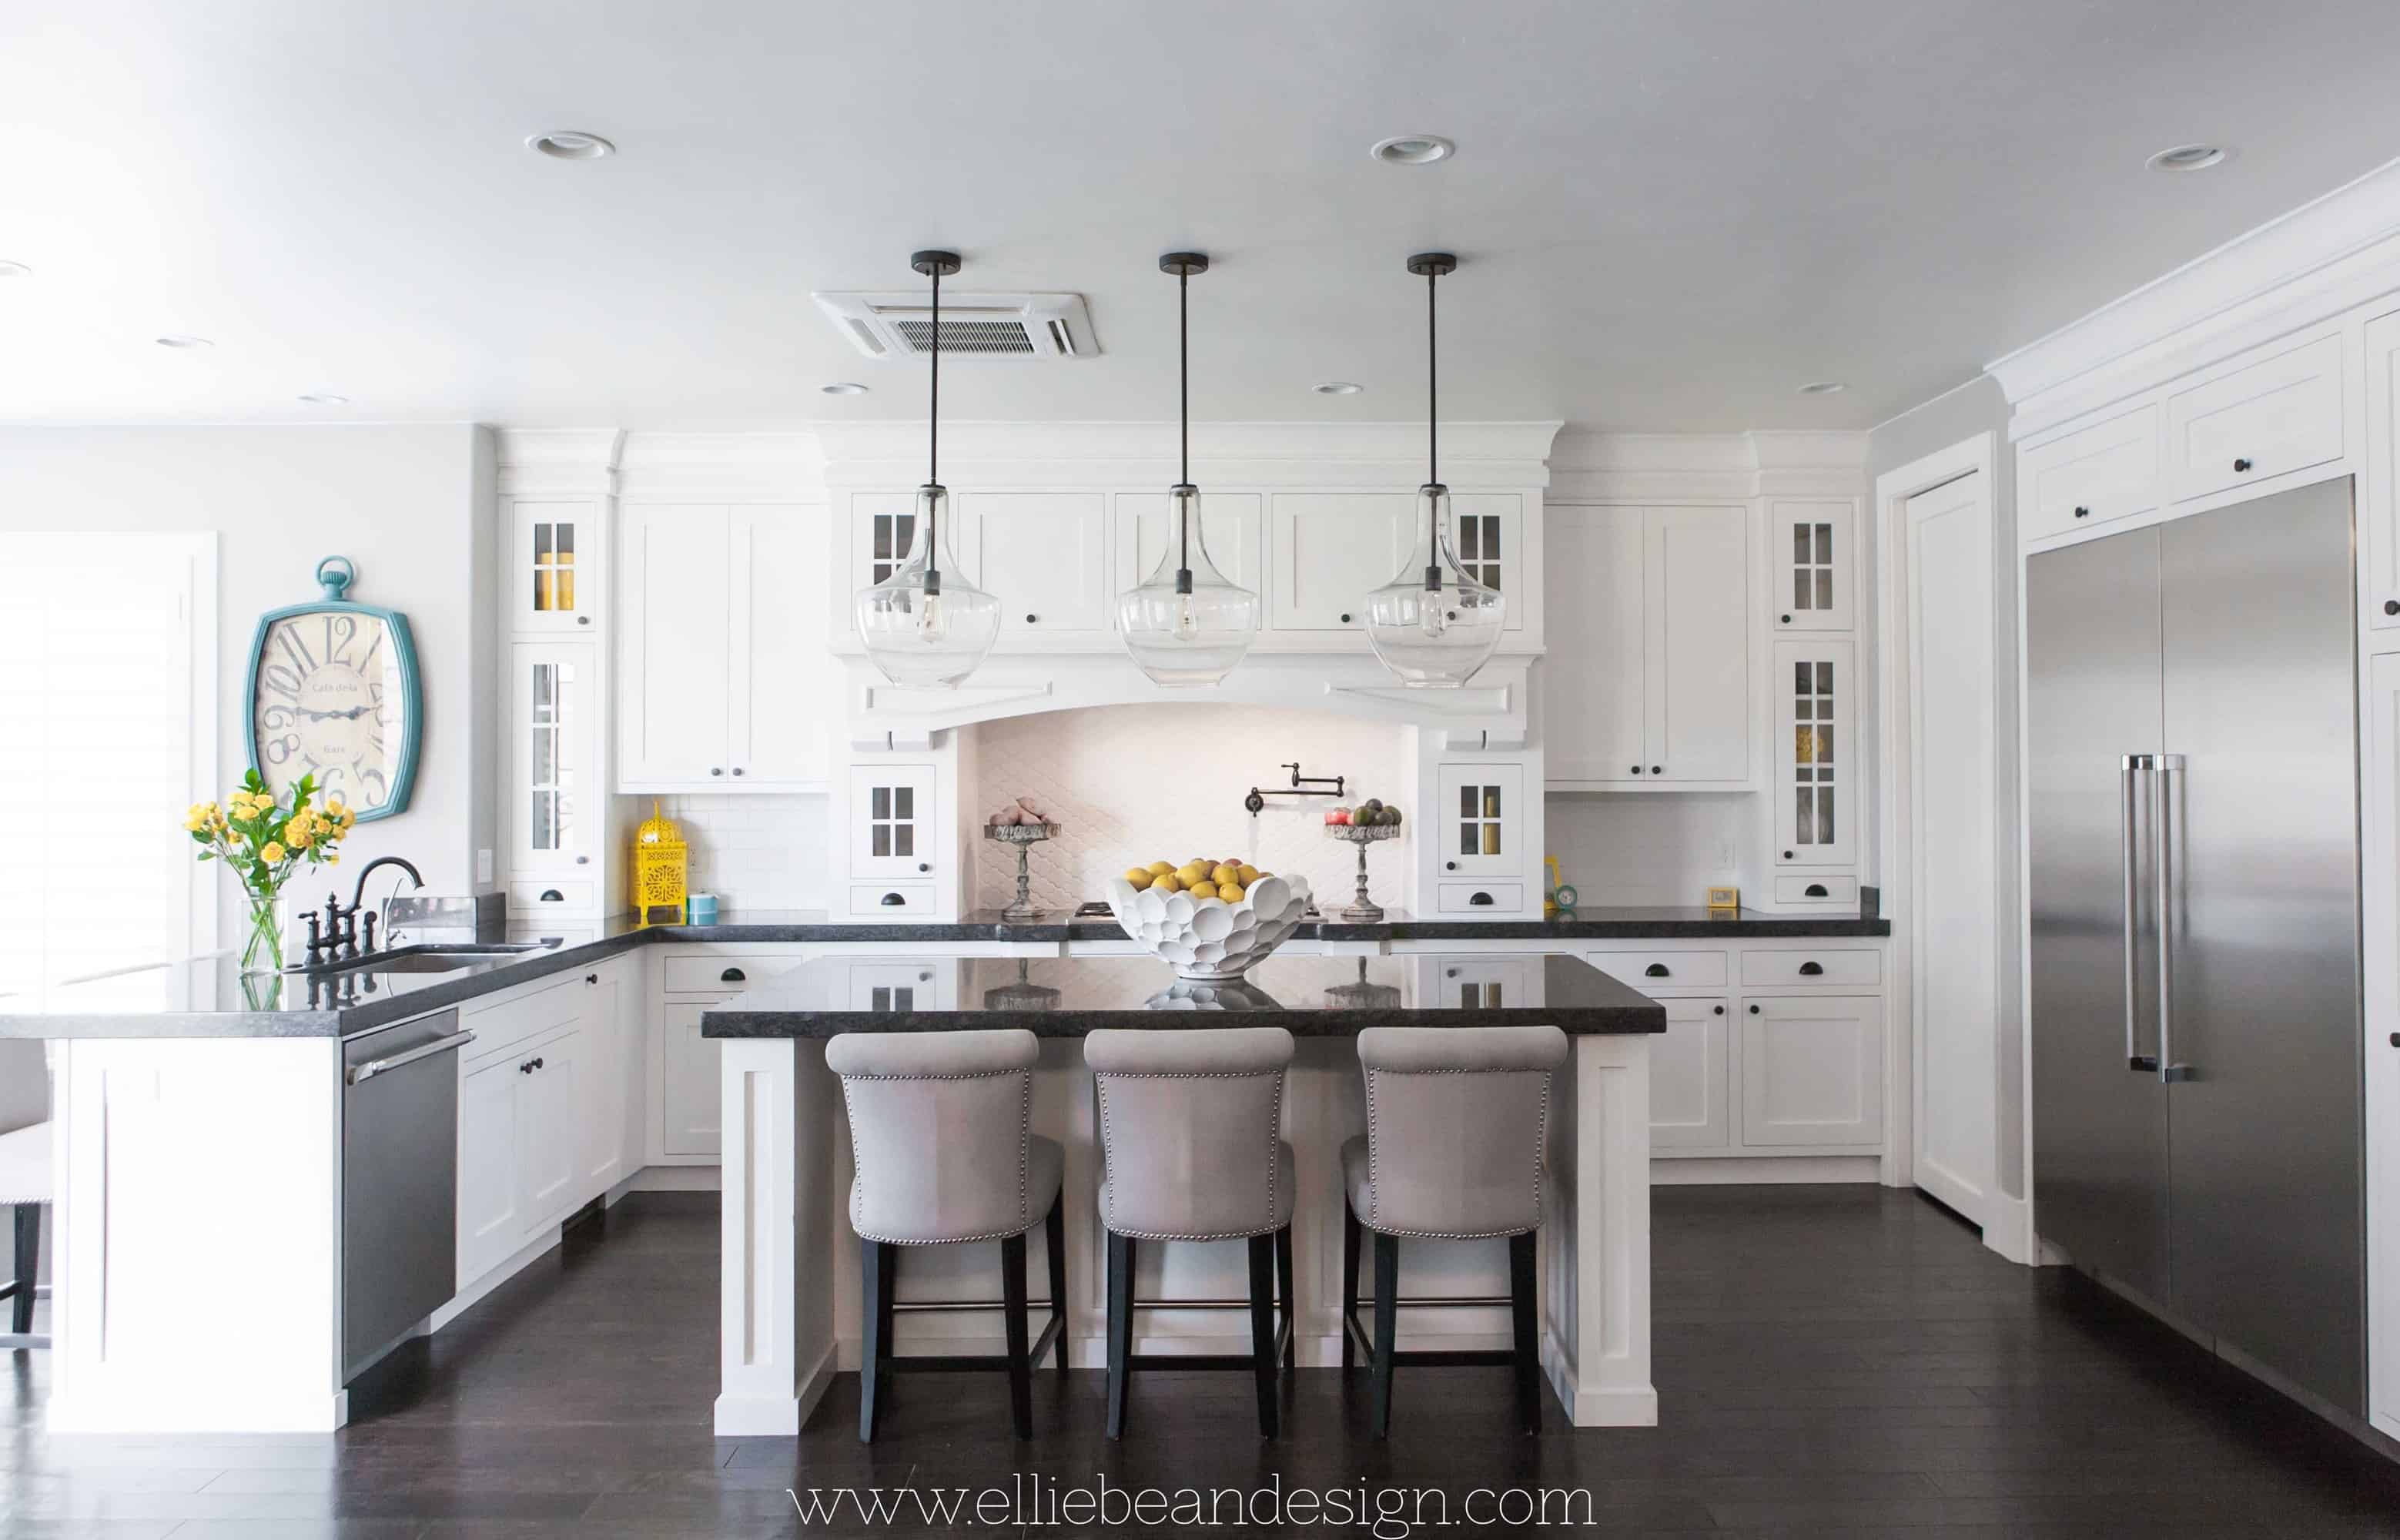 10 rules to create the perfect white kitchen over the All white kitchen ideas